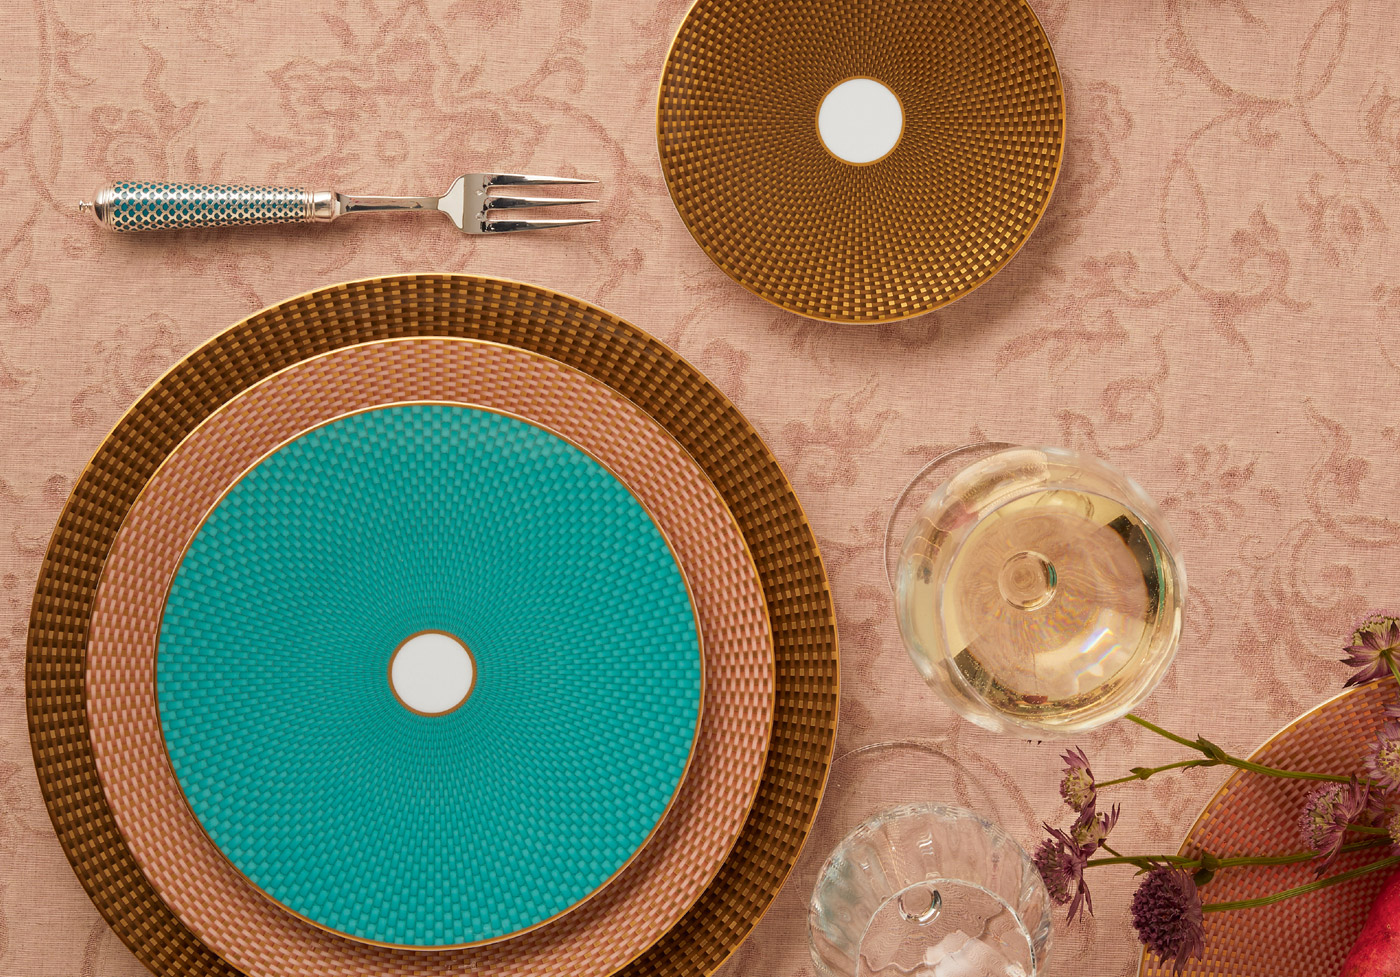 Raynaud Tresor salad plate in dinner plate sitting on rose colored table linen - photo taken from birds eye perspective